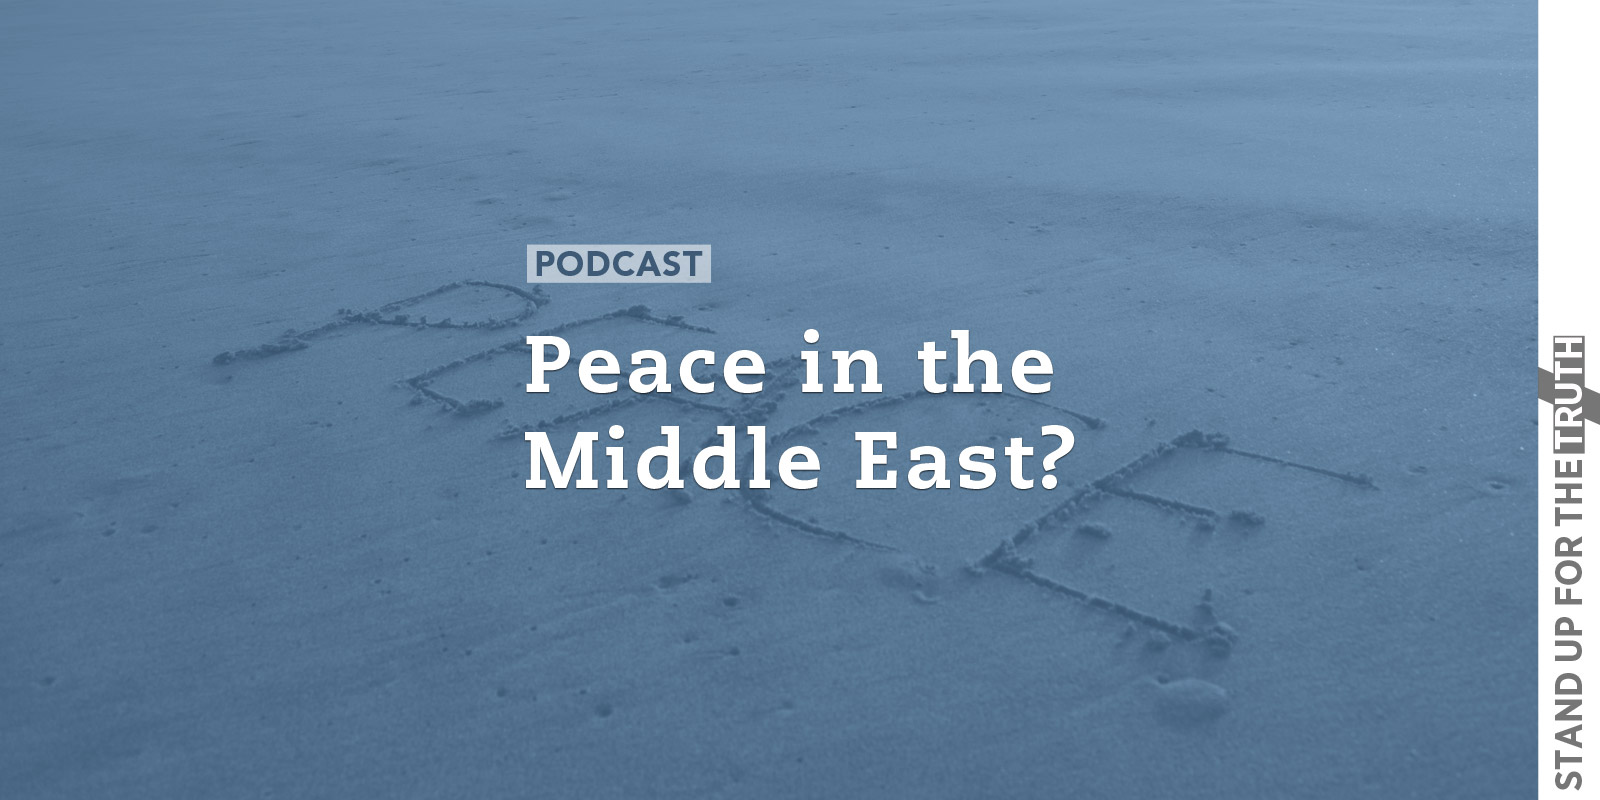 essay on peace in the middle east Write a 1500-3000-word research paper on your country's position on peace in the middle east middle east peace issues are broadly defined: from libya in north.